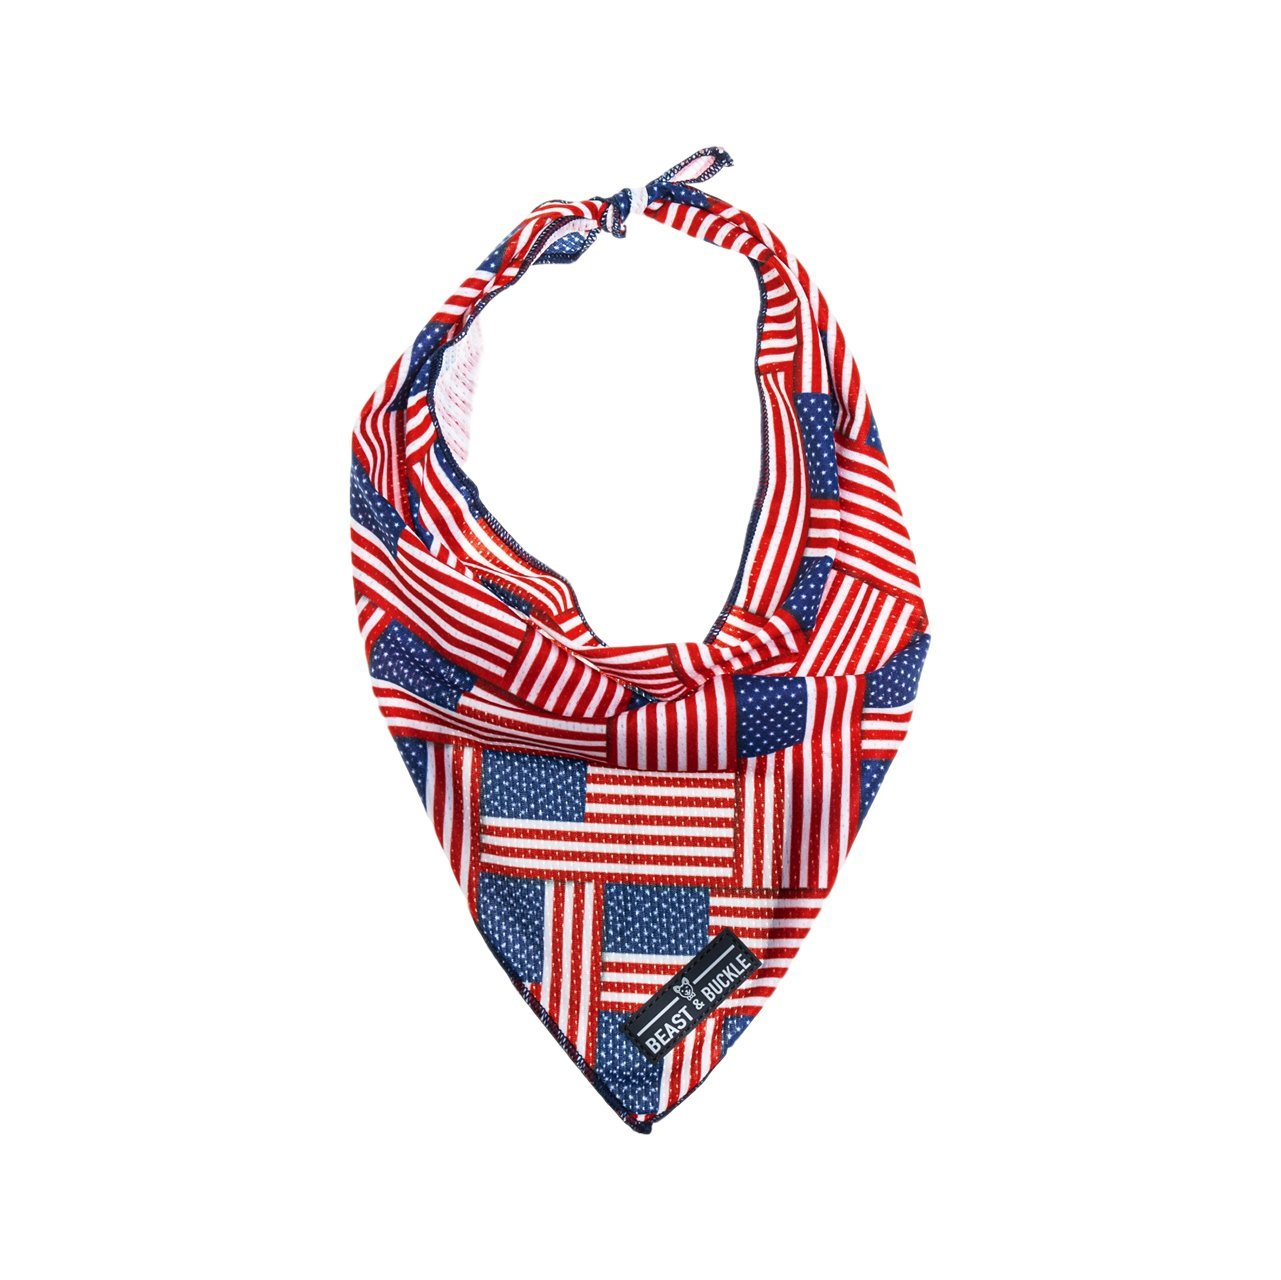 USA Cooling Bandana - Beast & Buckle